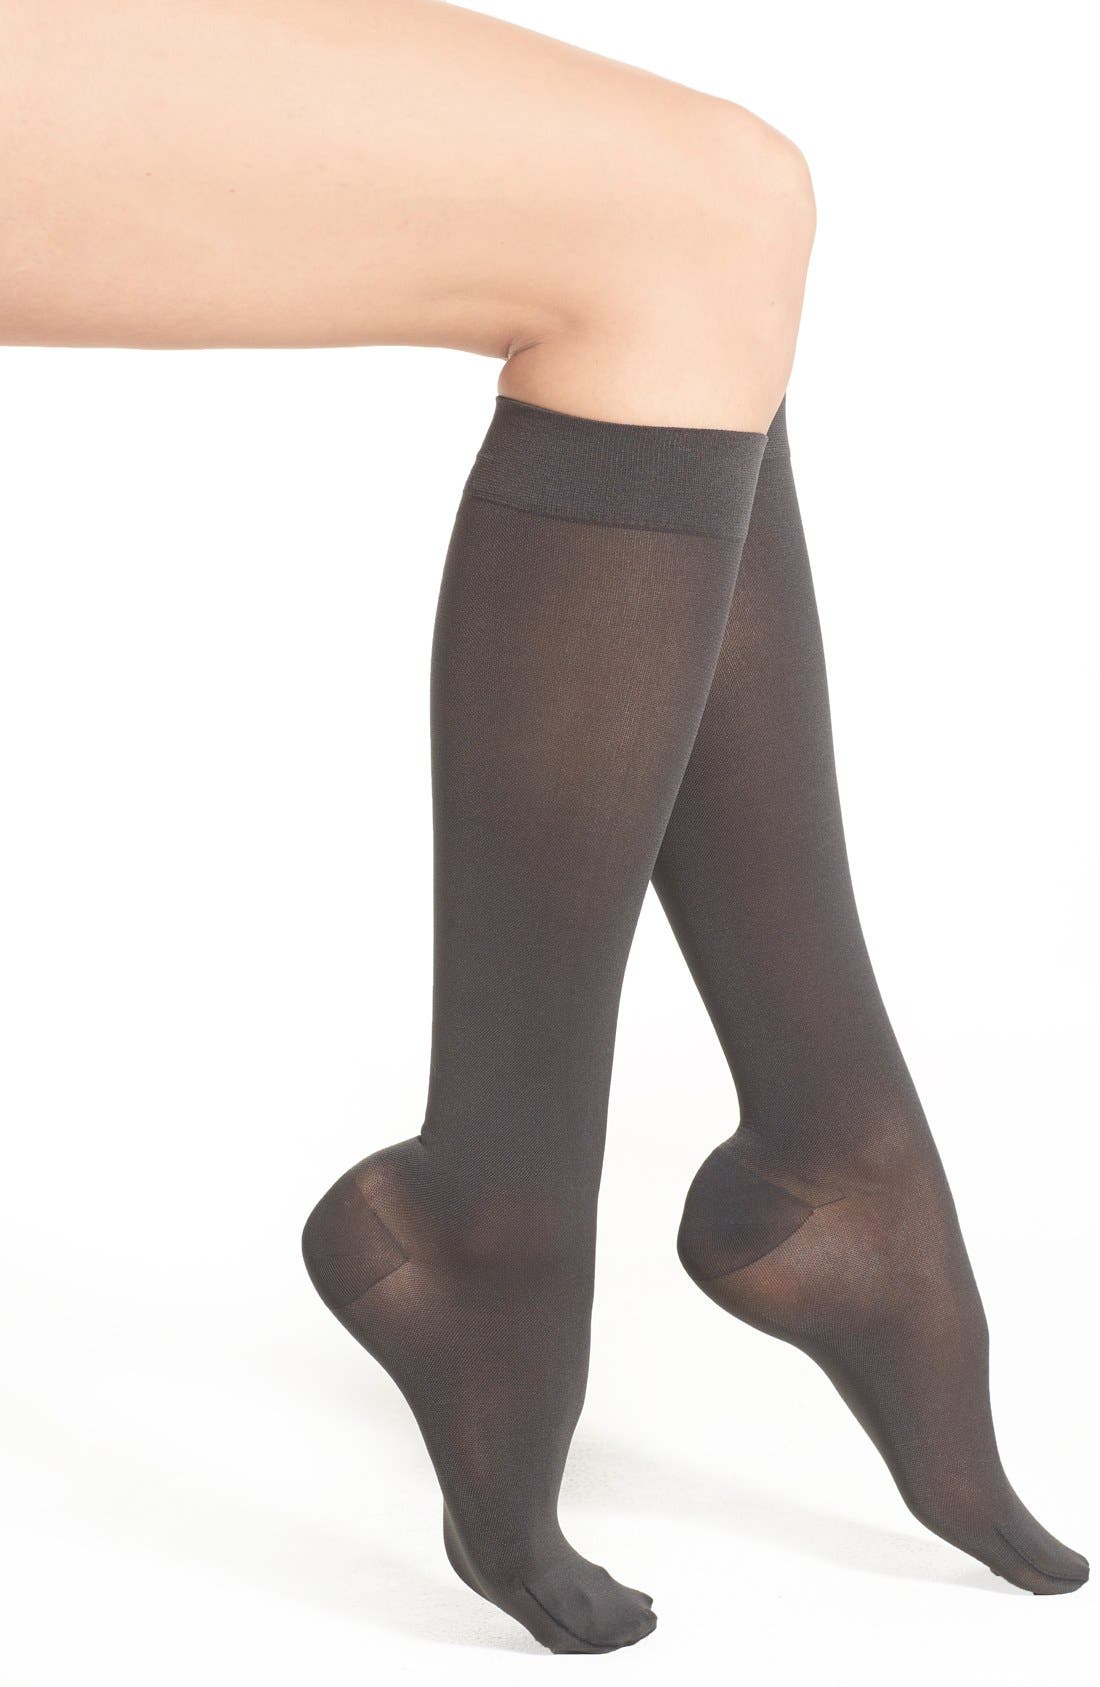 INSIGNIA by SIGVARIS 'Headliner' Compression Knee High Socks